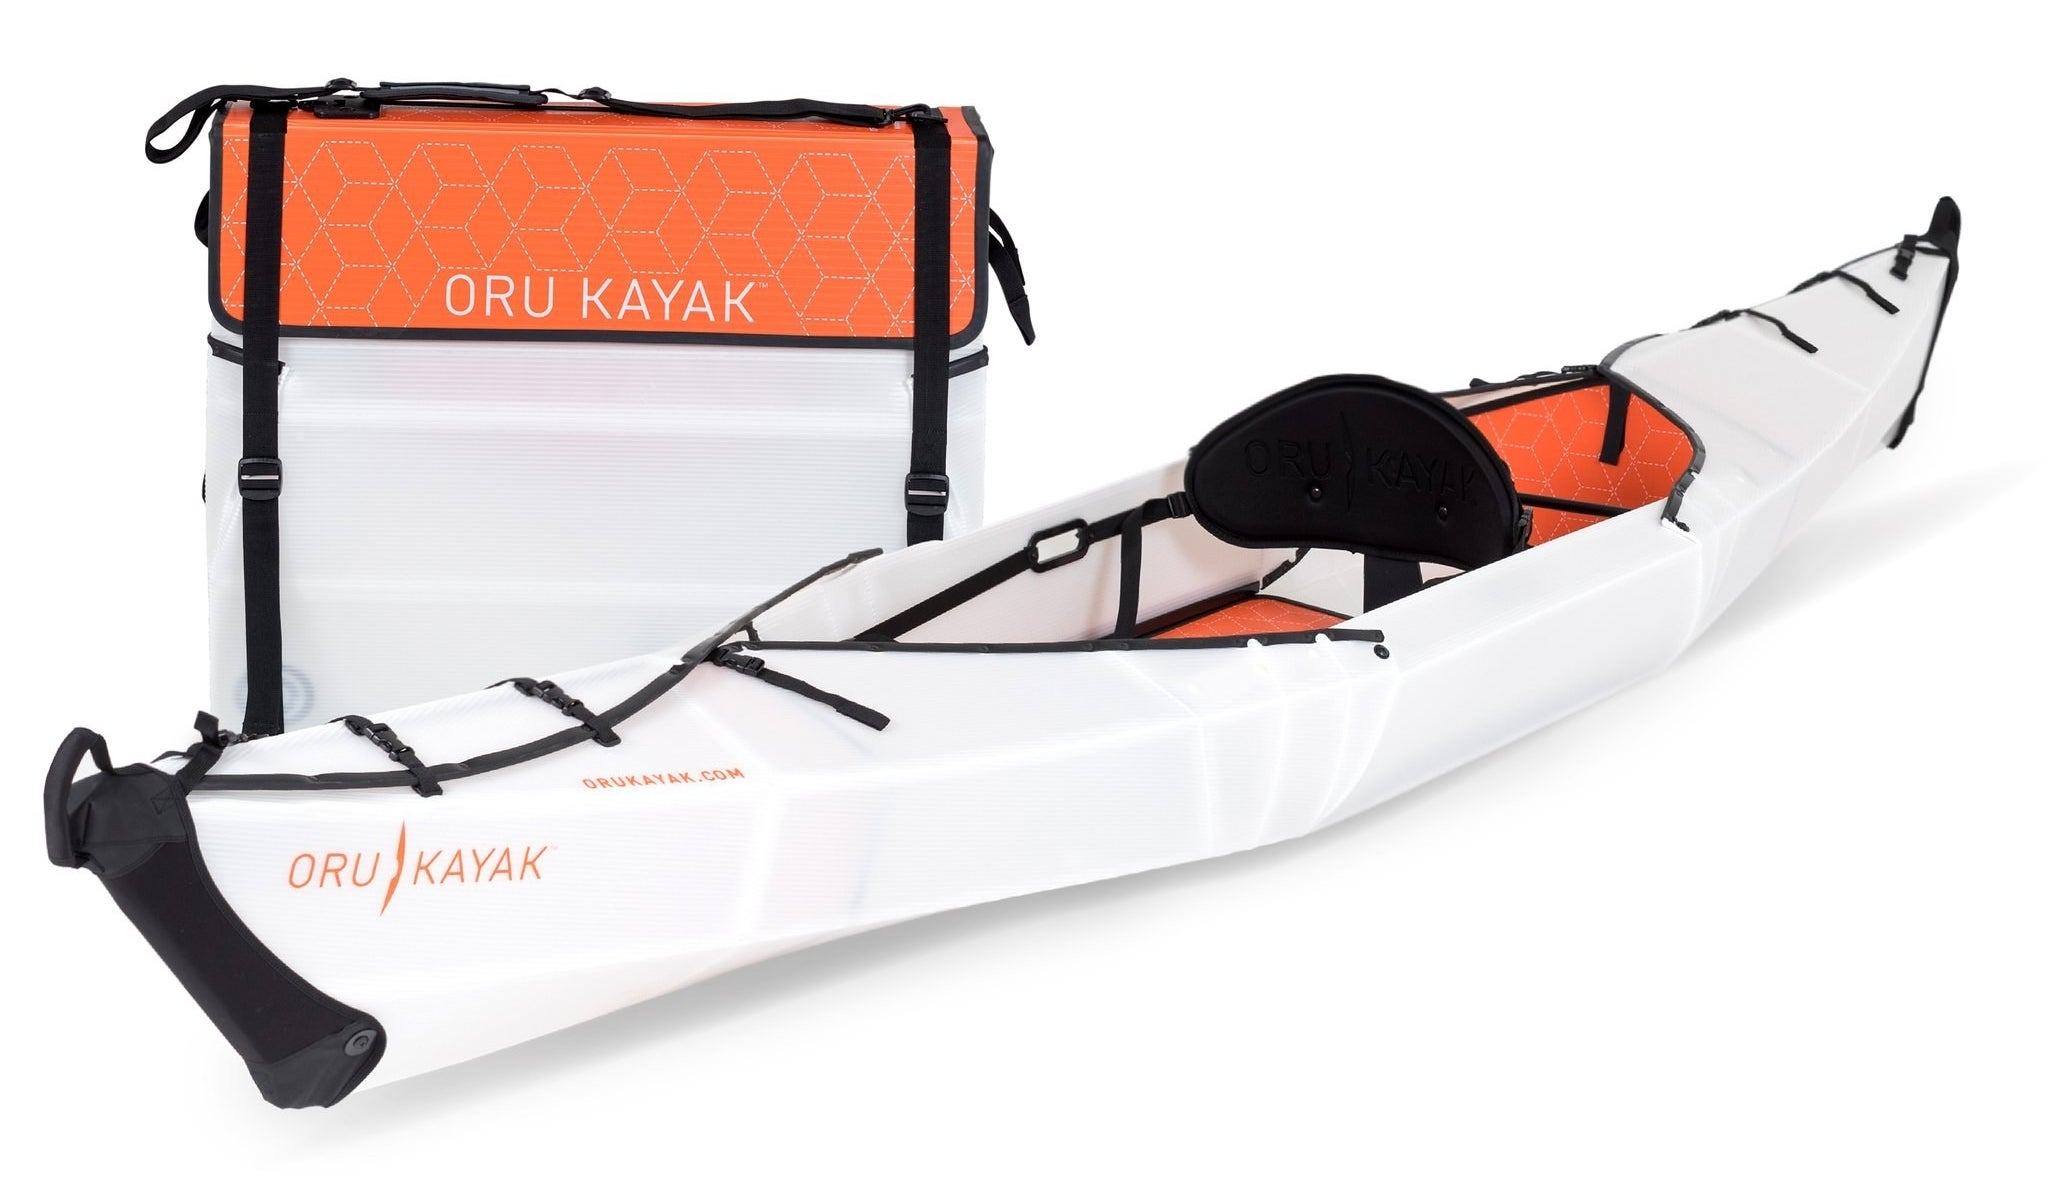 the full-size kayak beside a folded up version with a carrying strap.